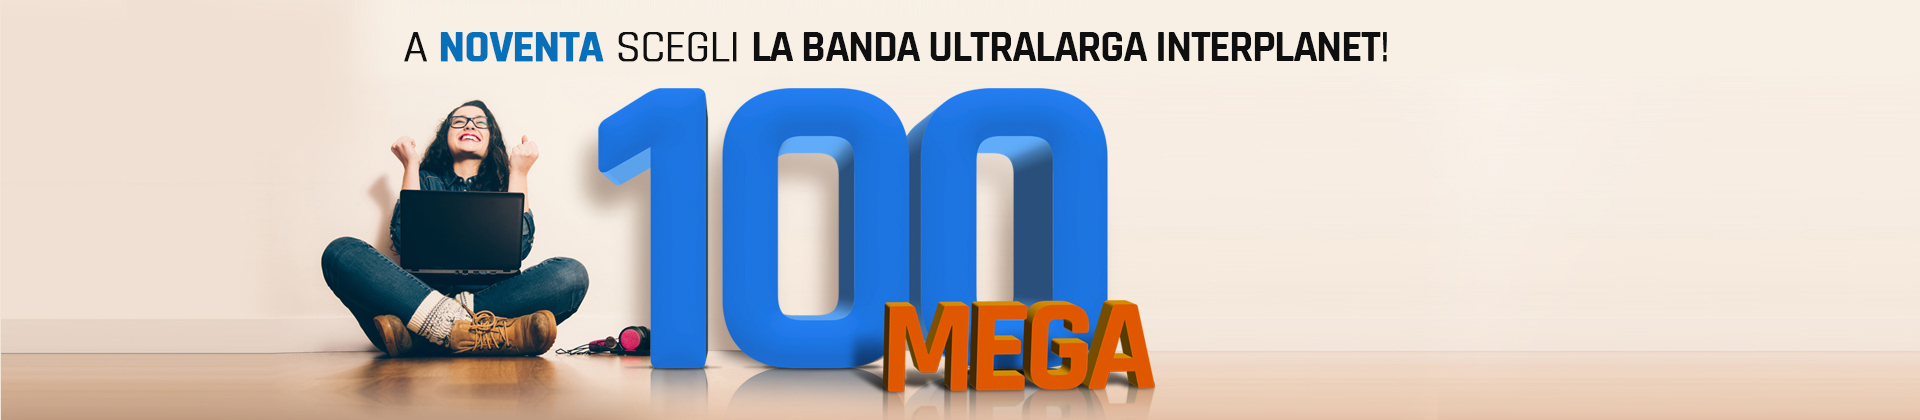 interplanet 100 mega noventa